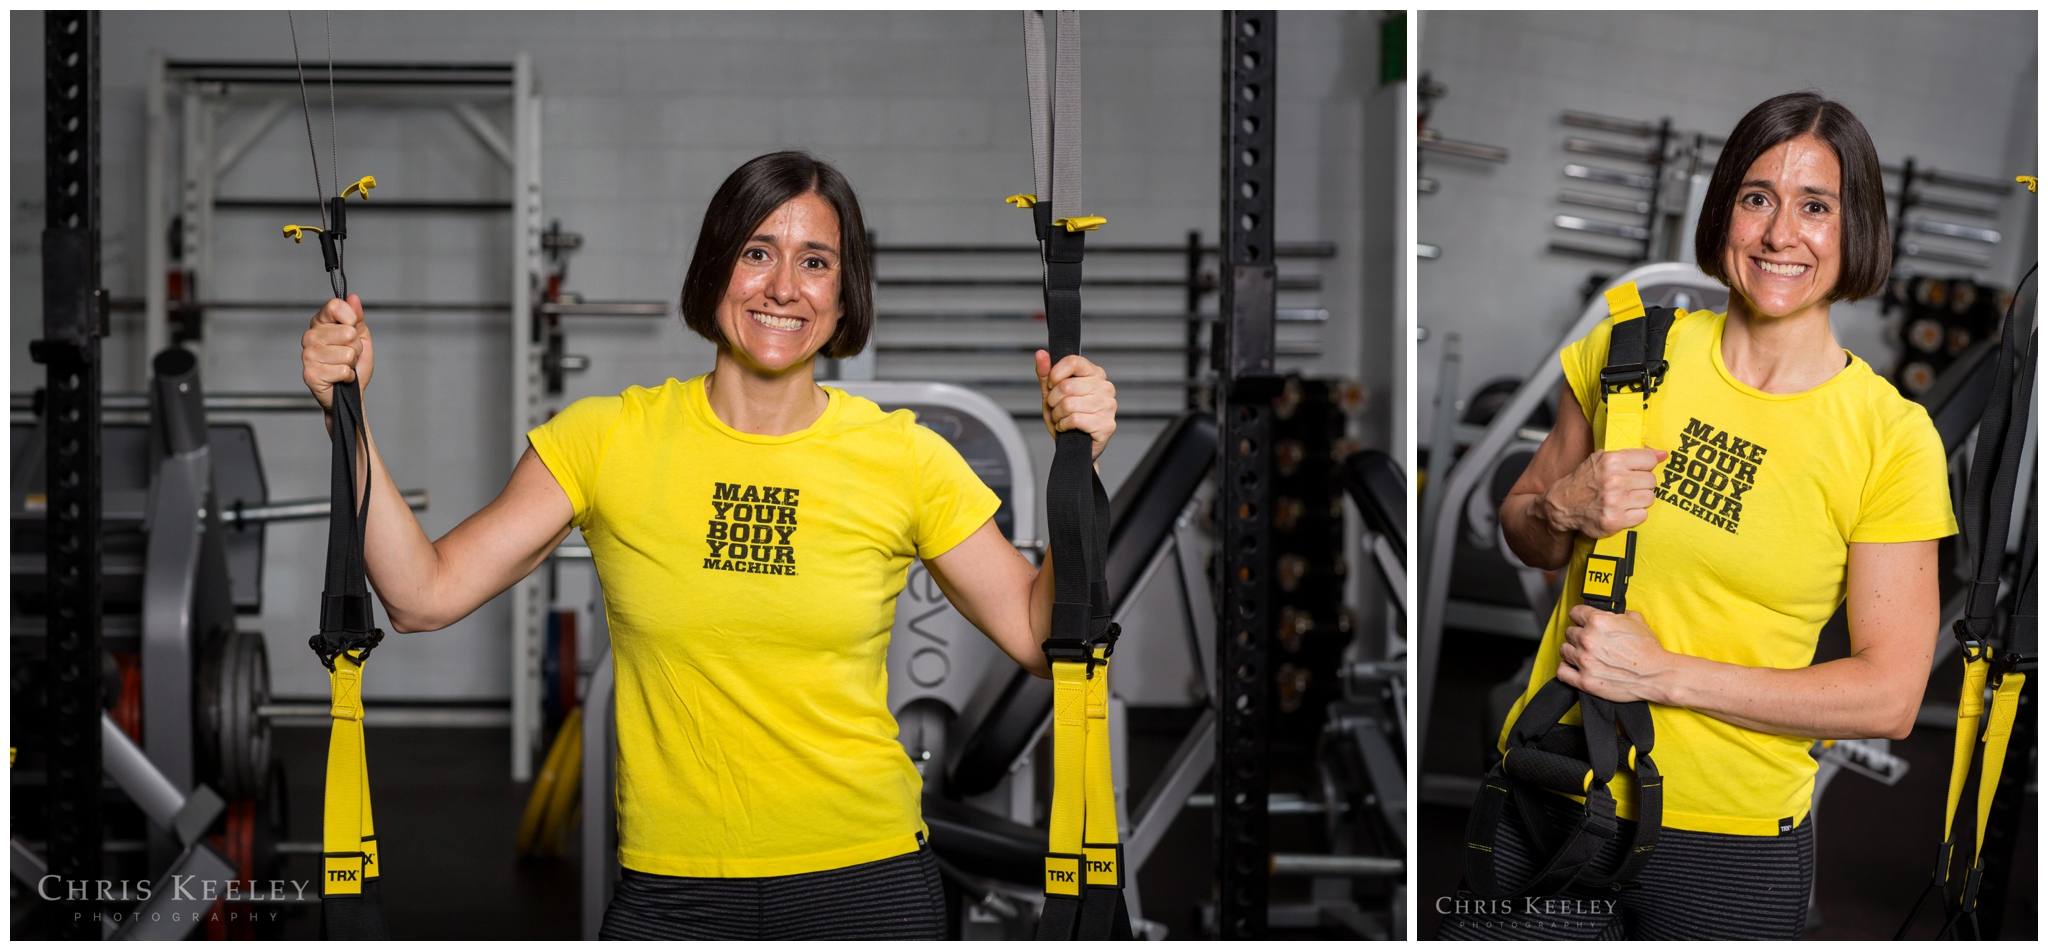 dover-new-hampshire-fitness-photography-trx-personal-trainer-photoshoot-09.jpg